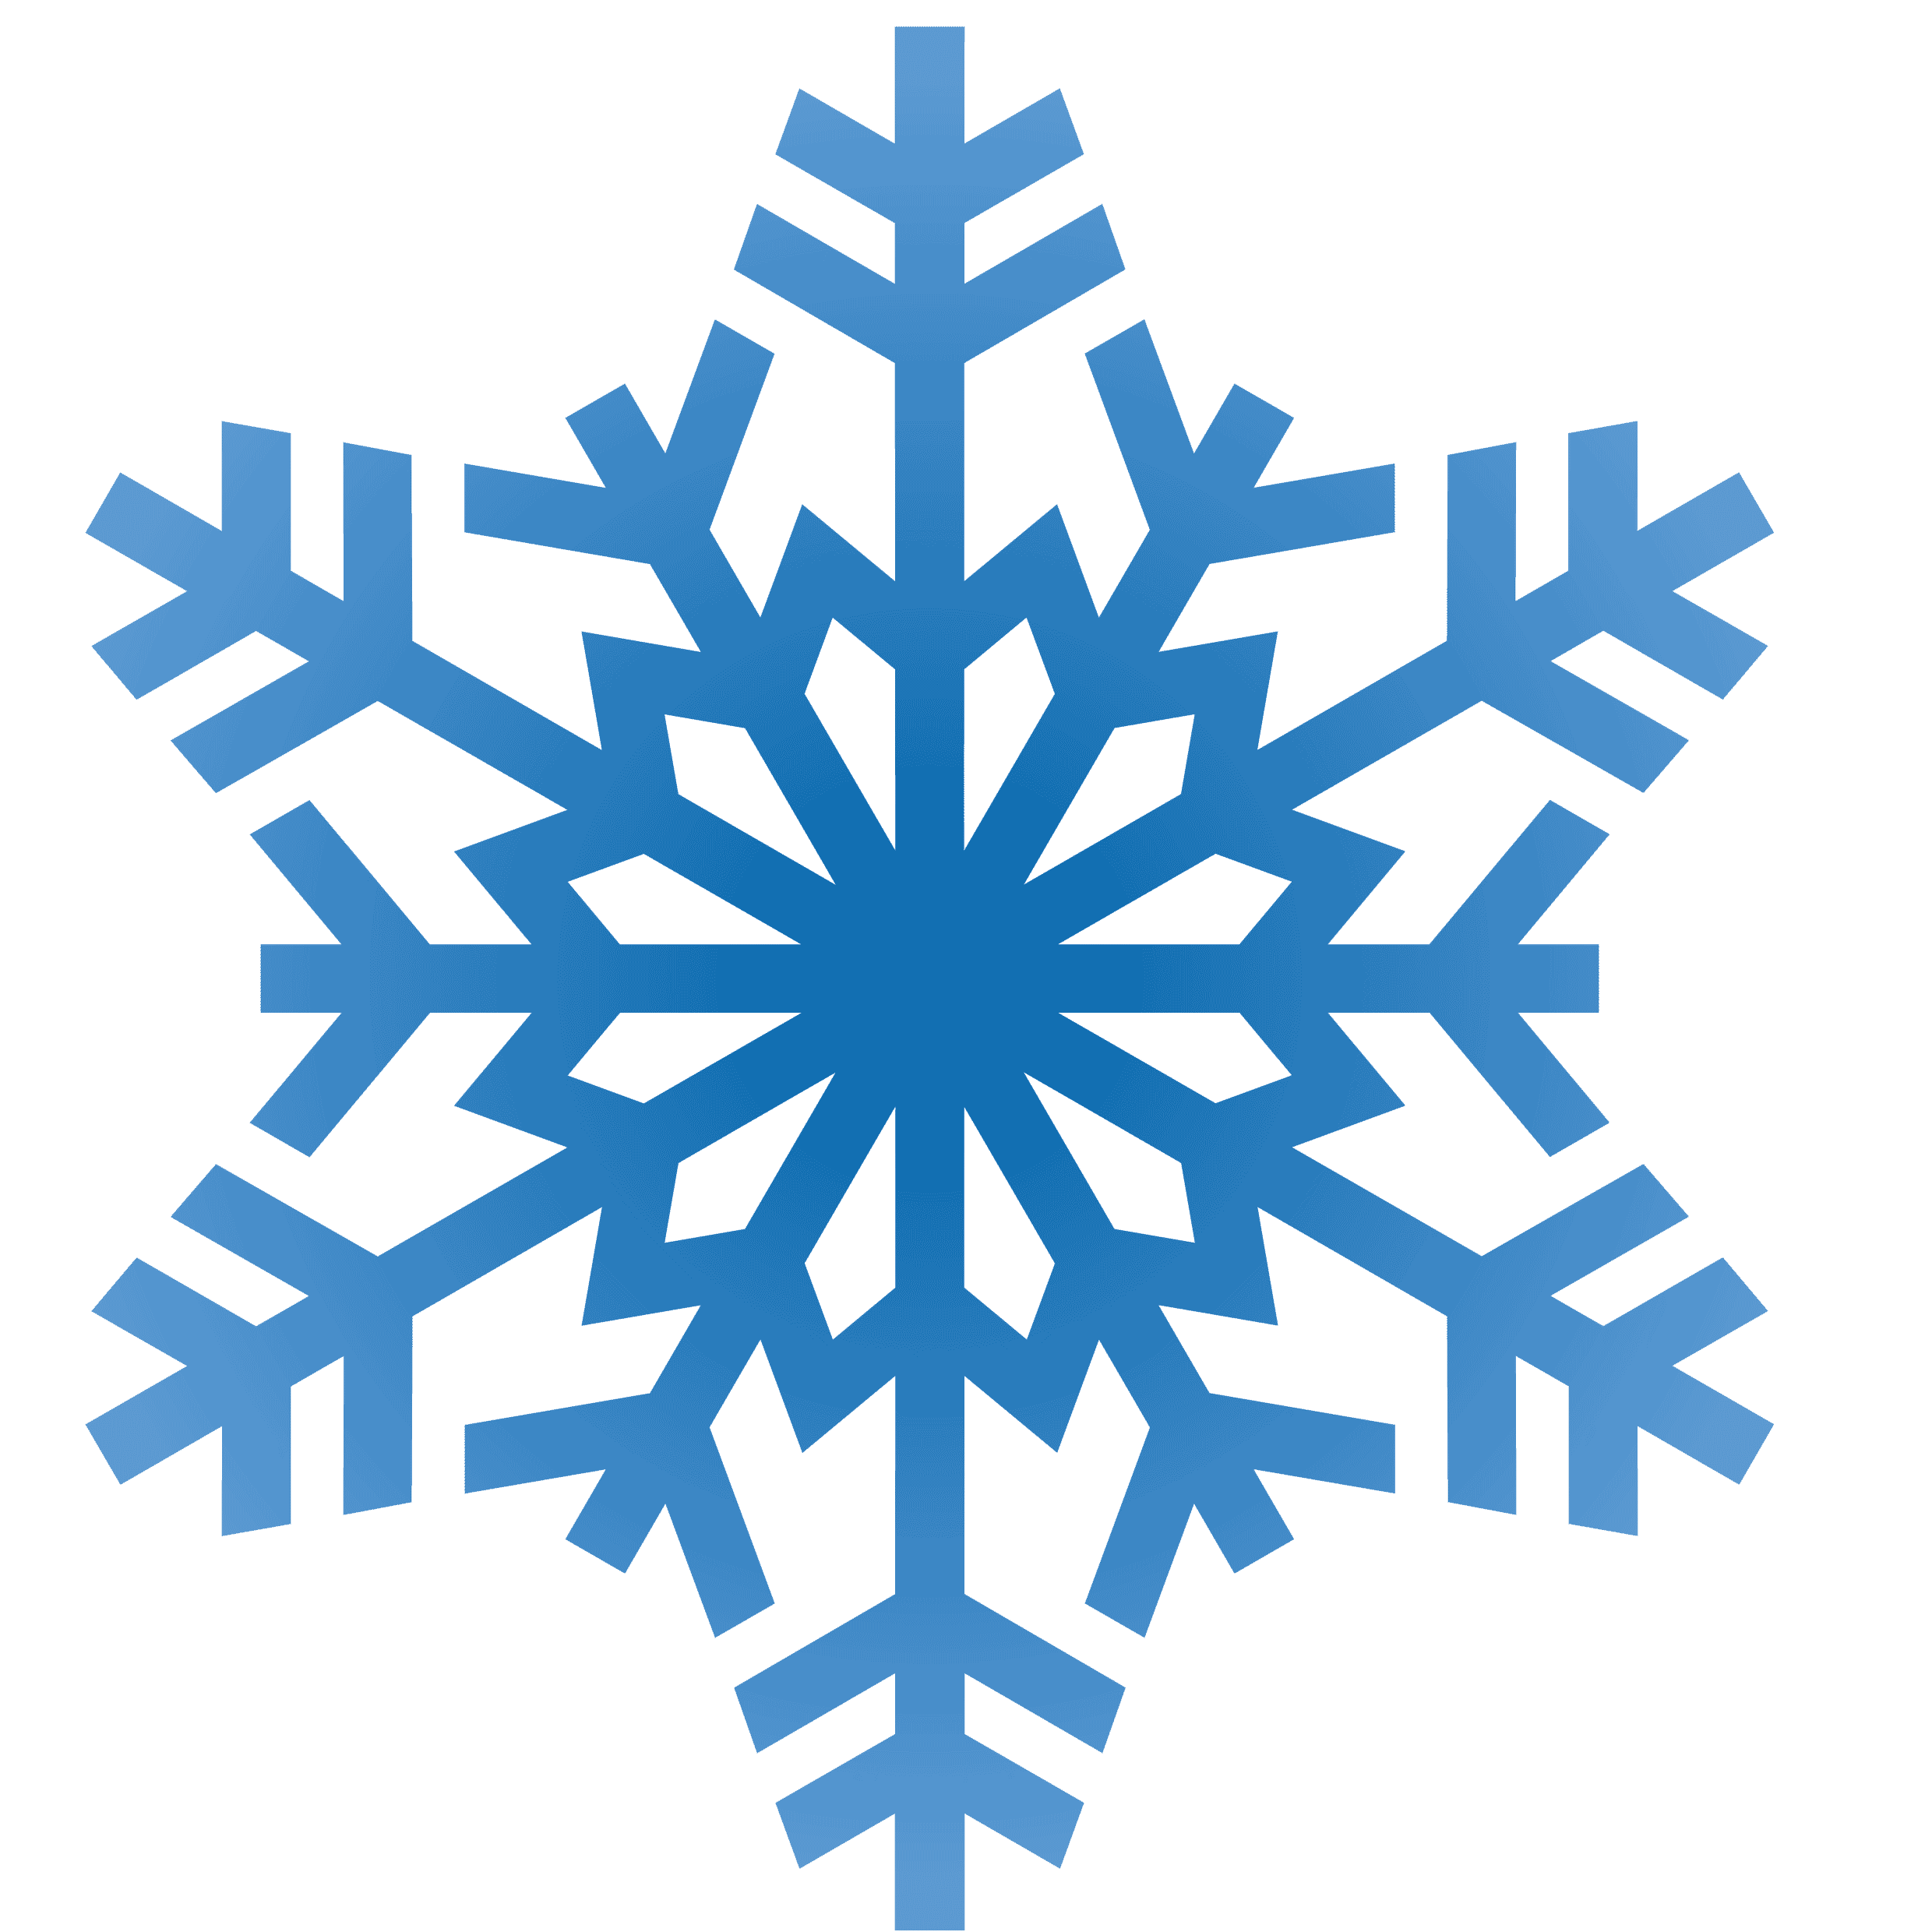 Snowflake free clipart graphic transparent library Free Snowflake Graphic, Download Free Clip Art, Free Clip ... graphic transparent library